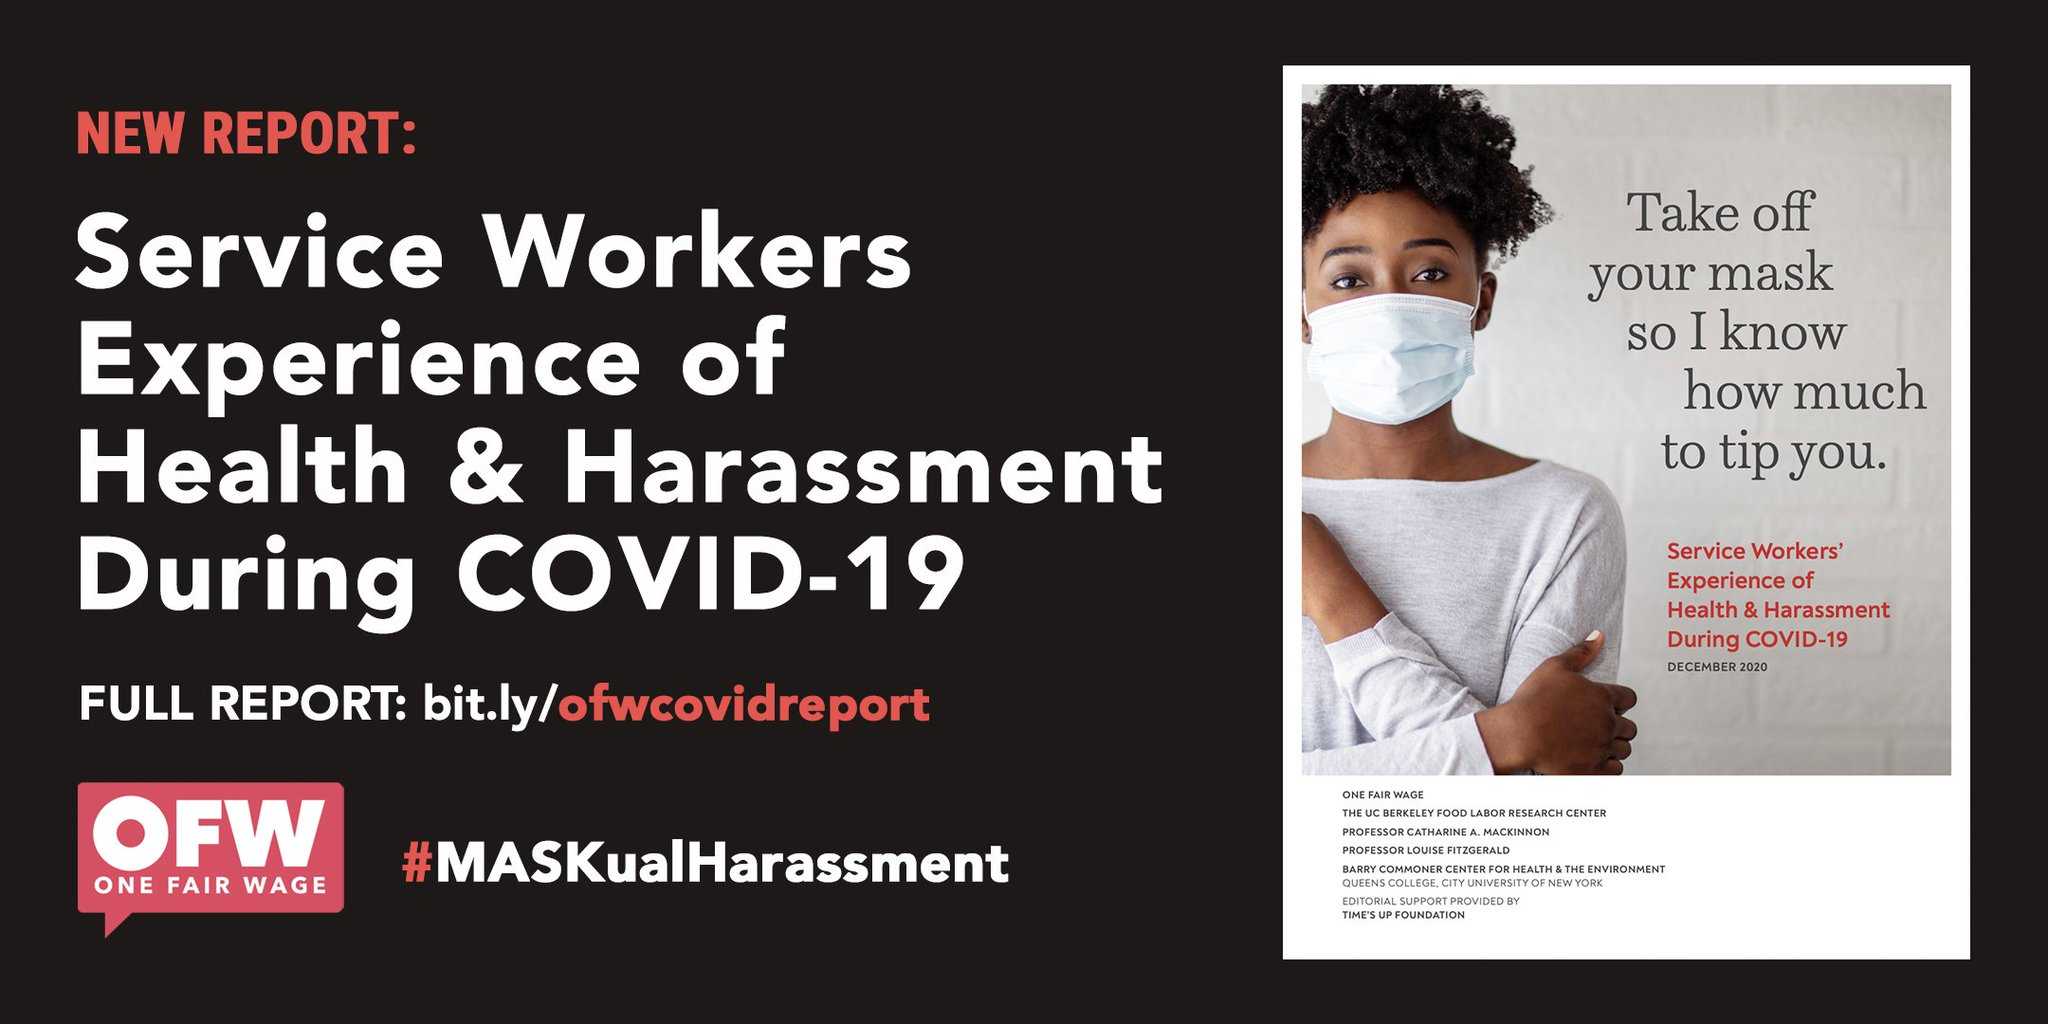 Saru Jayaraman On Twitter Today Onefairwage Released Our Latest Report Service Workers Experience Of Health Harassment During Covid 19 Our Report Closely Examines Several Life Threatening Circumstances That Our Service Workers Are Exposed